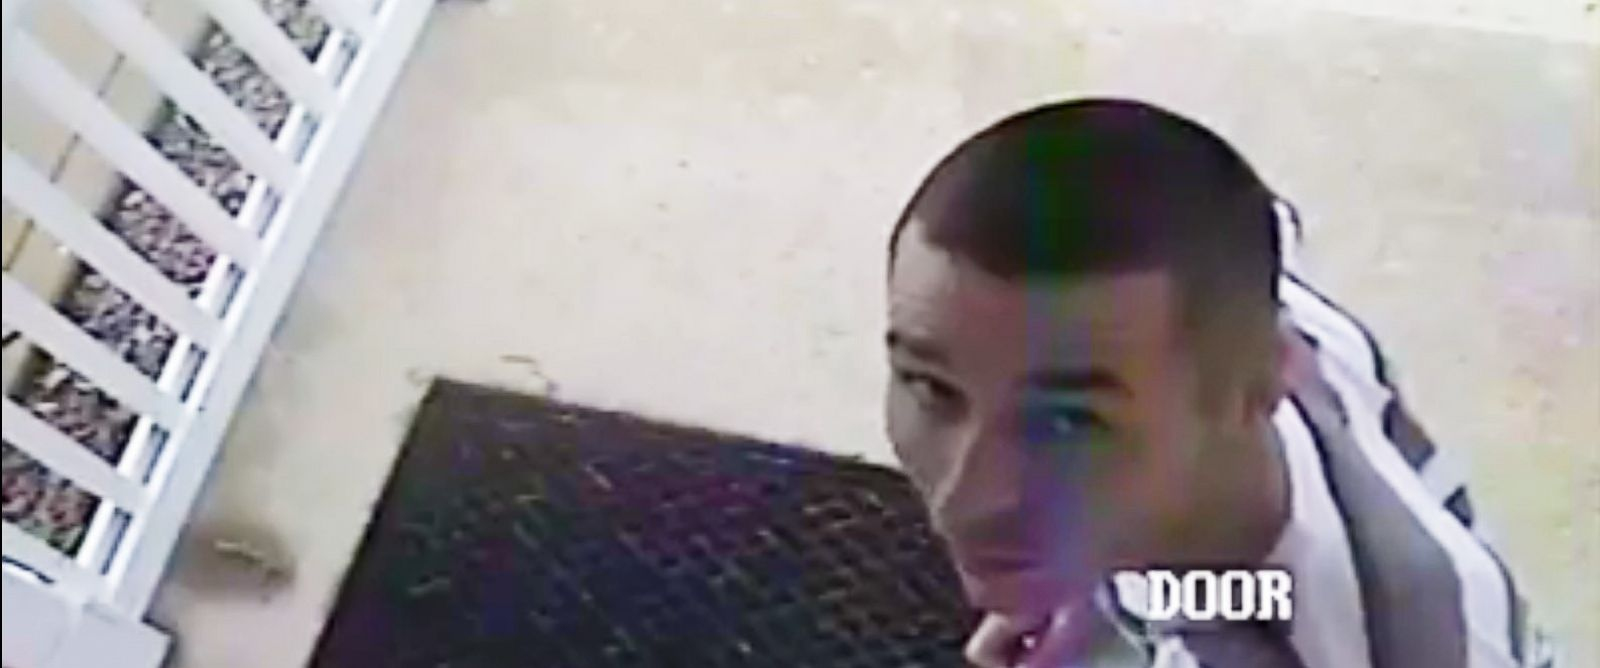 PHOTO: Daniel Dillon posted a video to his Facebook page that police say shows suspect Brandon Nelms looking at a security camera before removing the contents of a Fedex package that had just been delivered to his door on the afternoon of July 23, 2014.